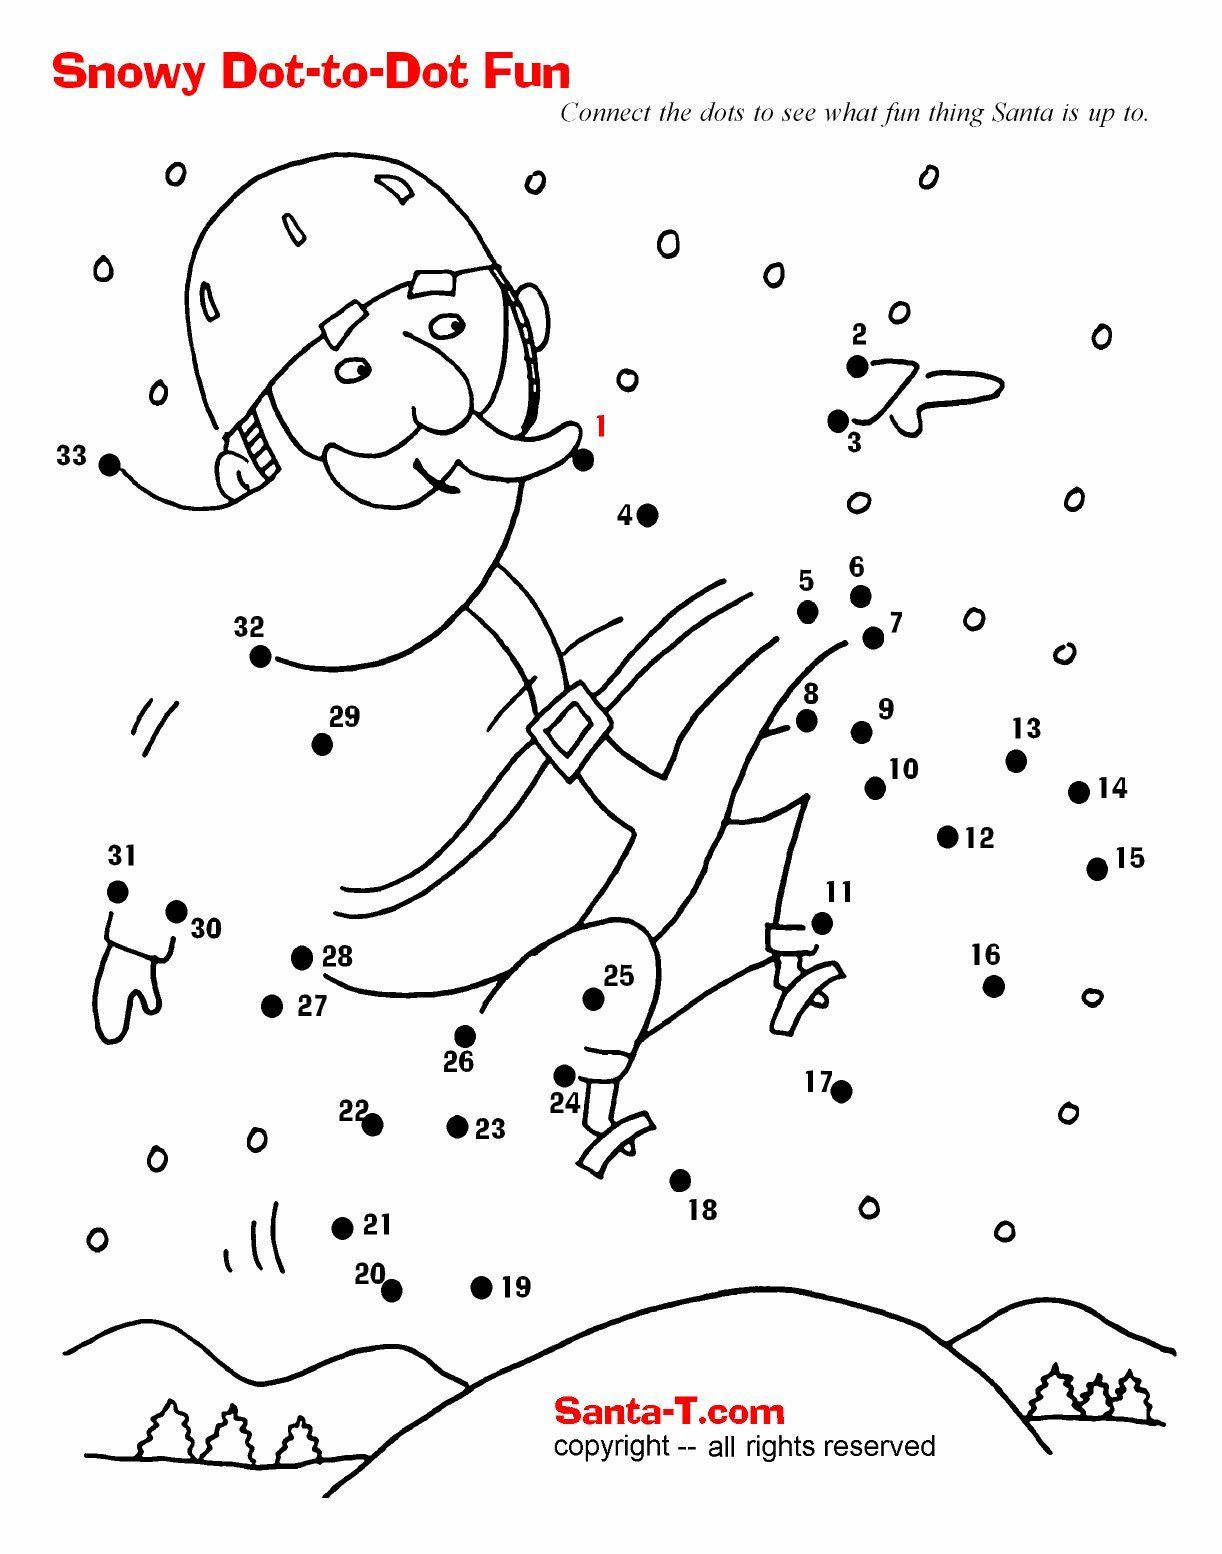 Valentine Dot To Dot Printables Snowy Santa Fun Dottodot Connect The Dots To See What Fun Thing Christmas Activity Book Dots Christmas Printables